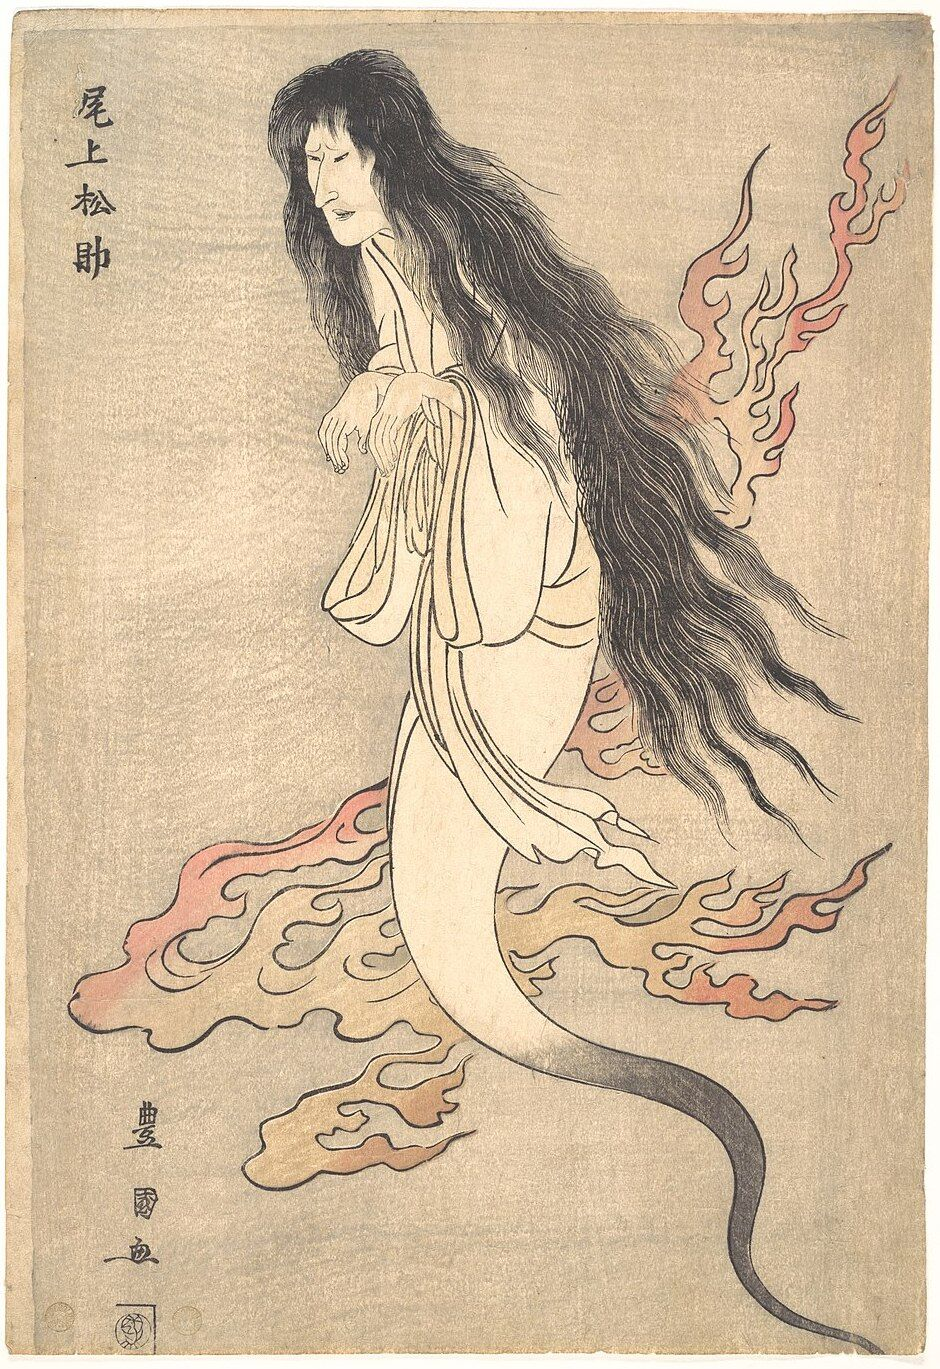 """Utagawa Toyokuni, Onoe Matsusuke as the Ghost of the Murdered Wife Oiwa, in """"A Tale of Horror from the Yotsuya Station on the Tokaido Road,"""" 1812. Courtesy of The Metropolitan Museum of Art."""